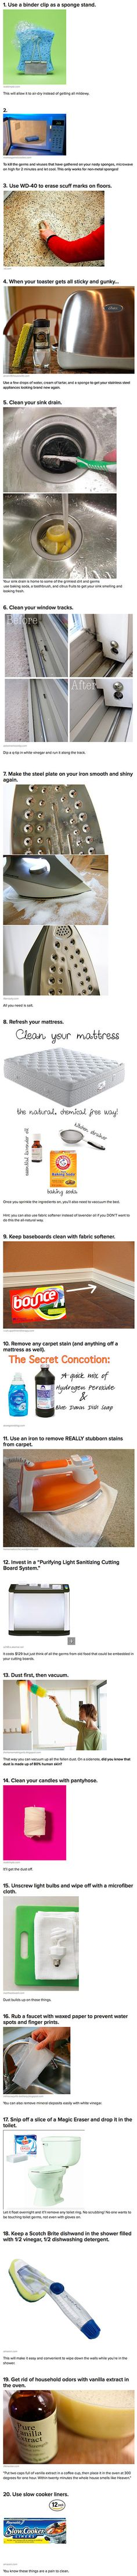 24 Useful Life Hacks Geeks Can Use to Keep Their Home Clean